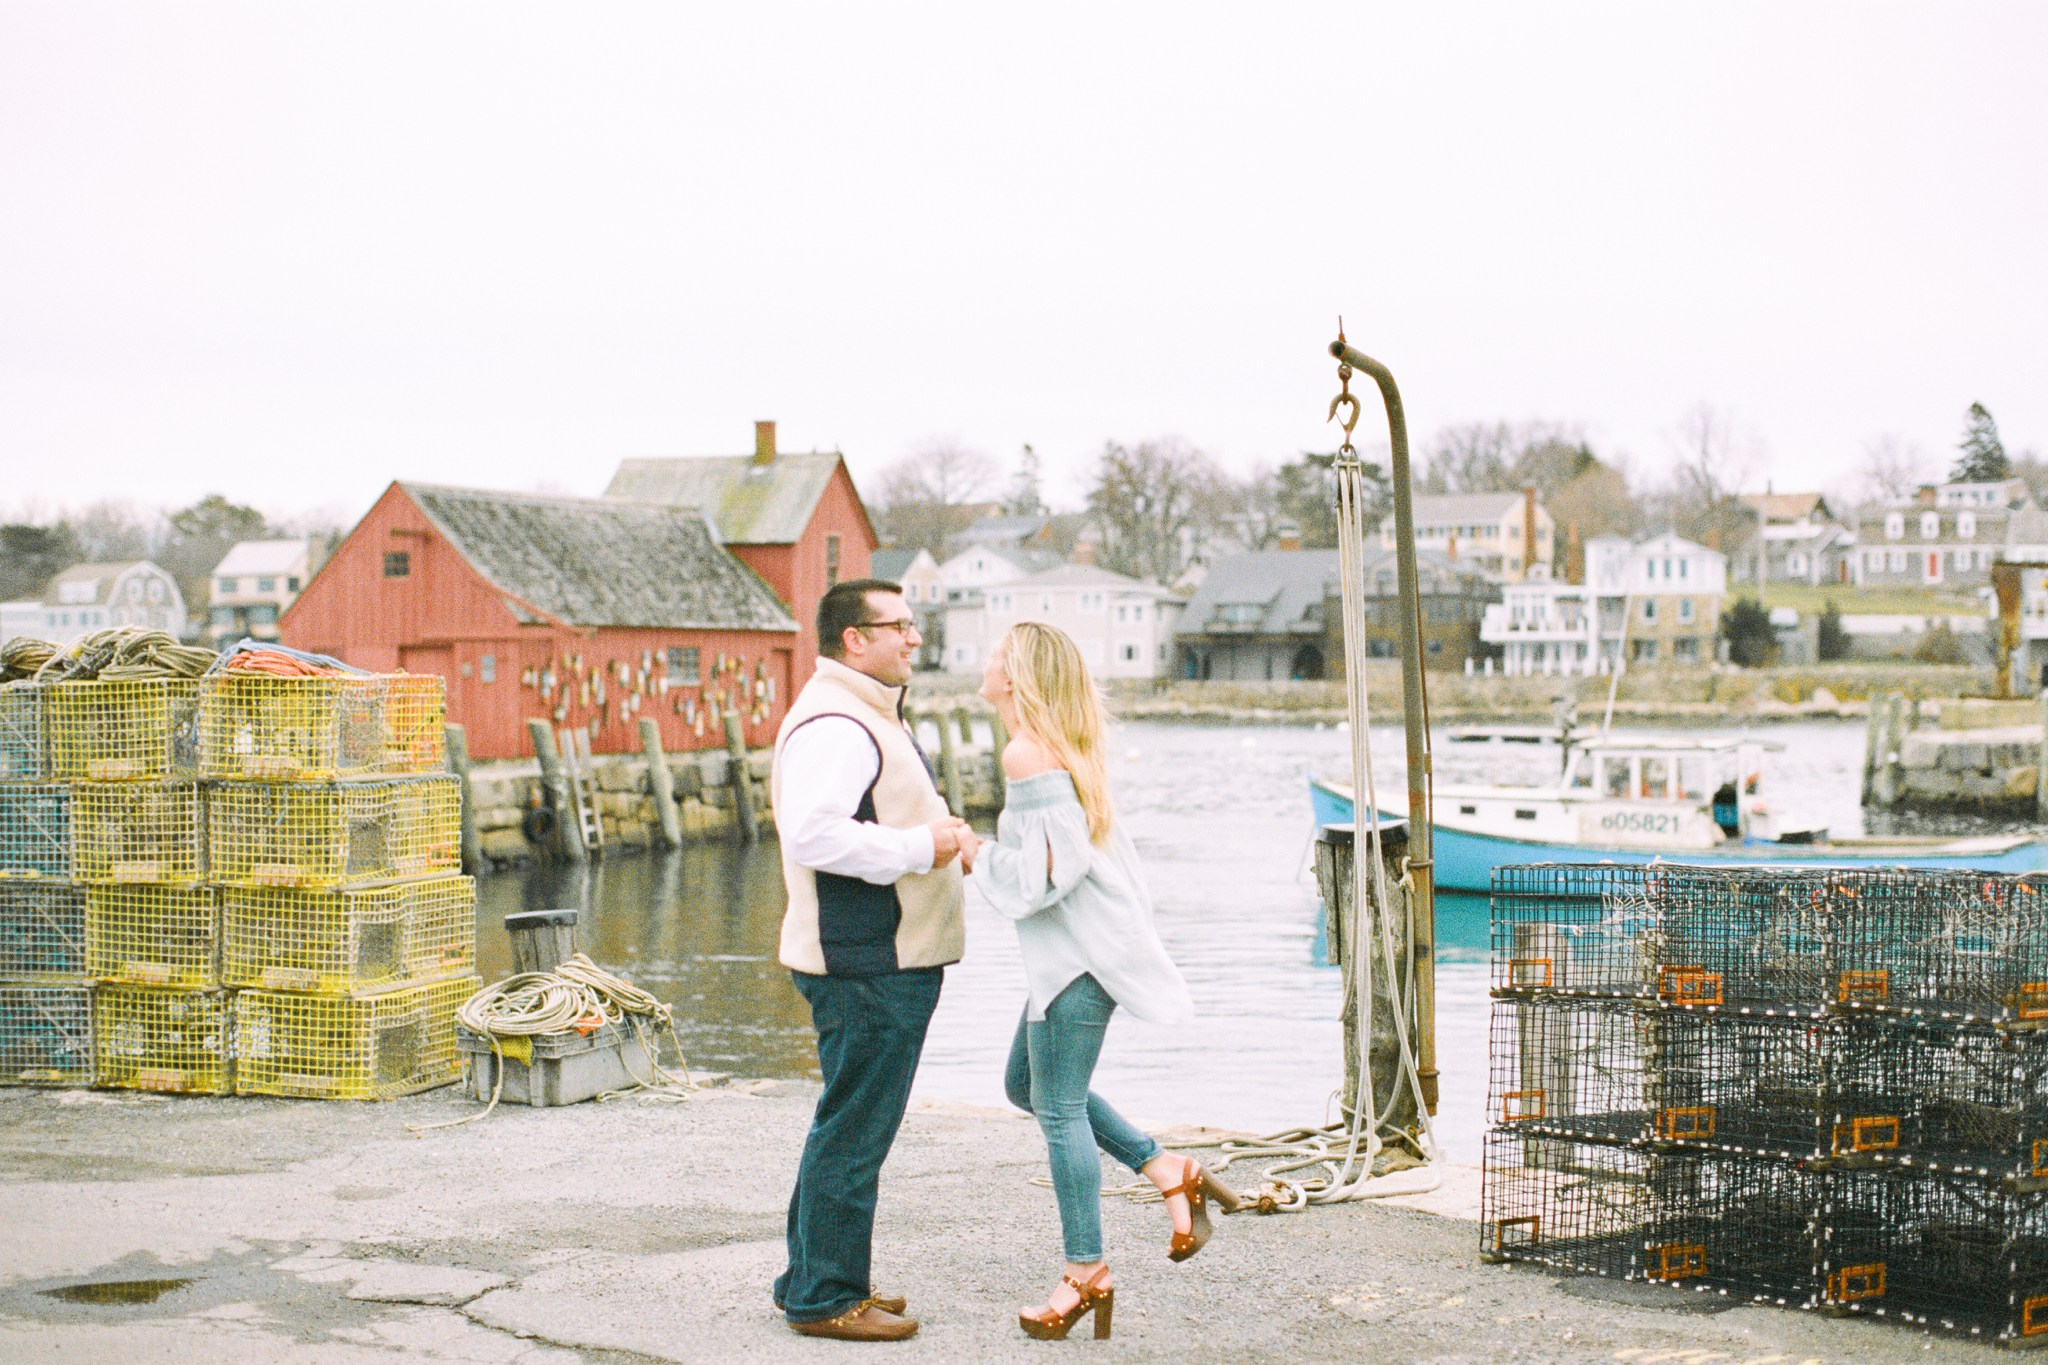 rockport_MA_engagement_session_Deborah_Zoe_Photography_00160.JPG